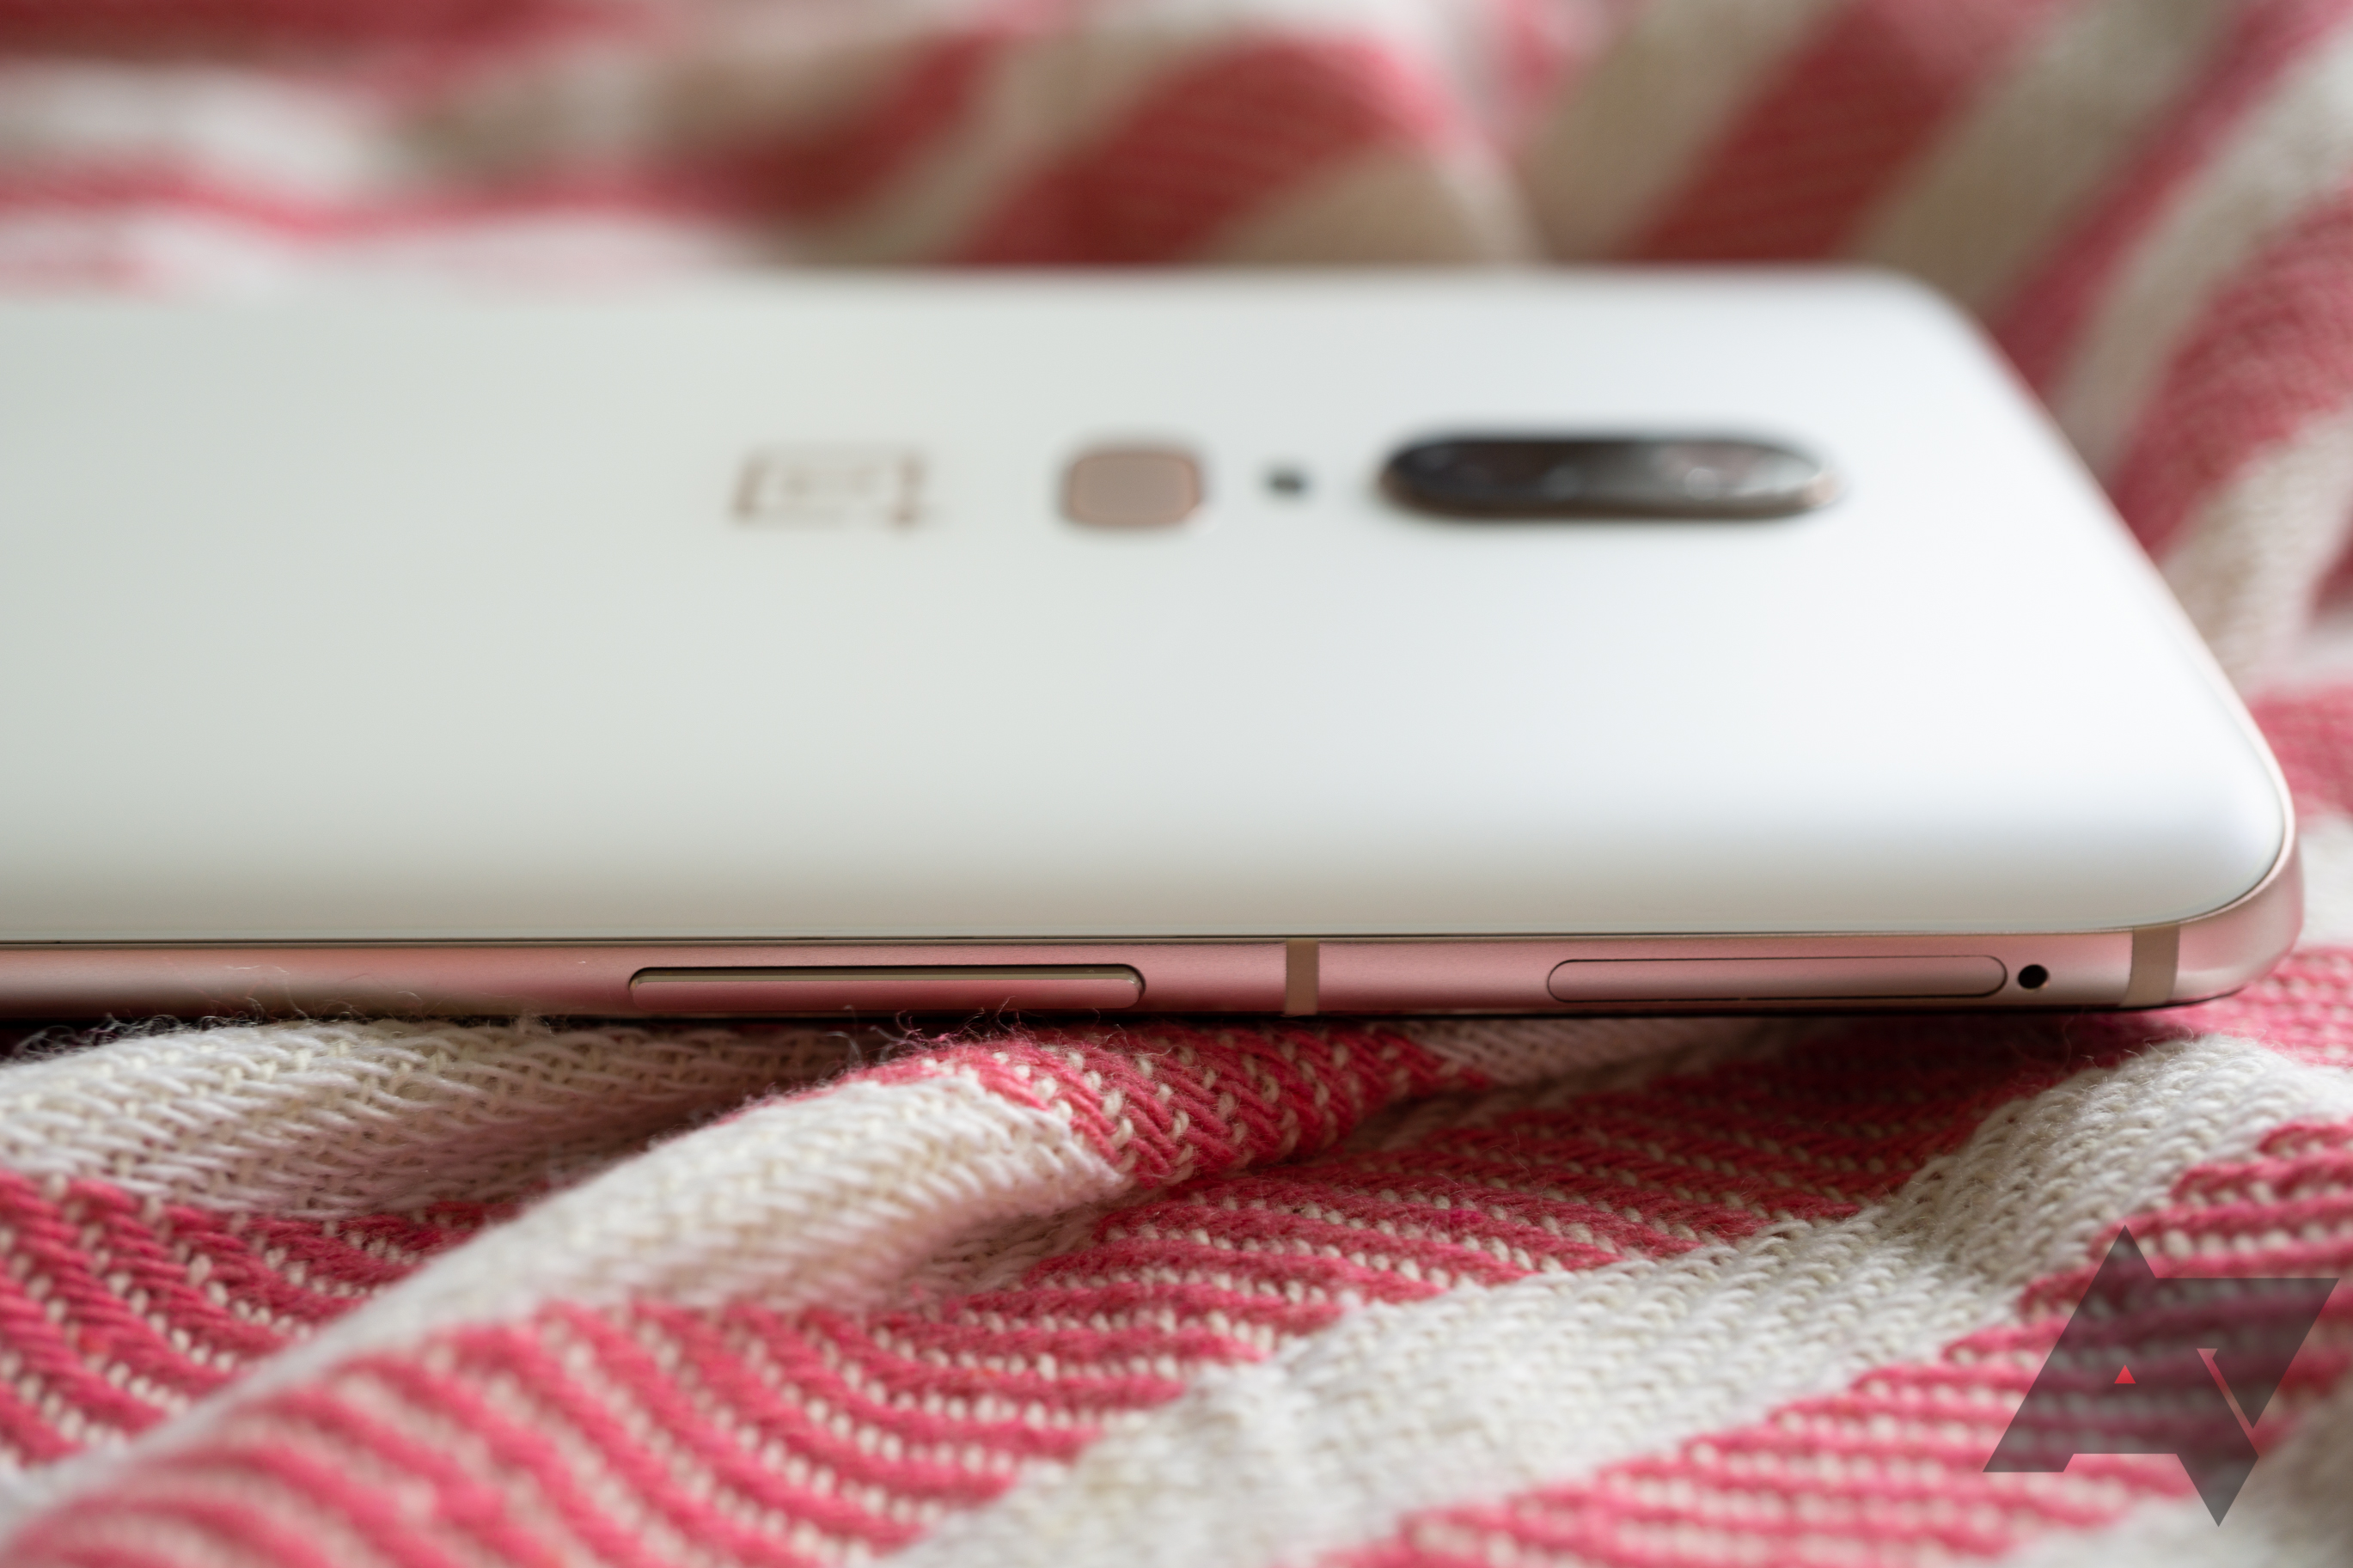 Silk White OnePlus 6 gallery